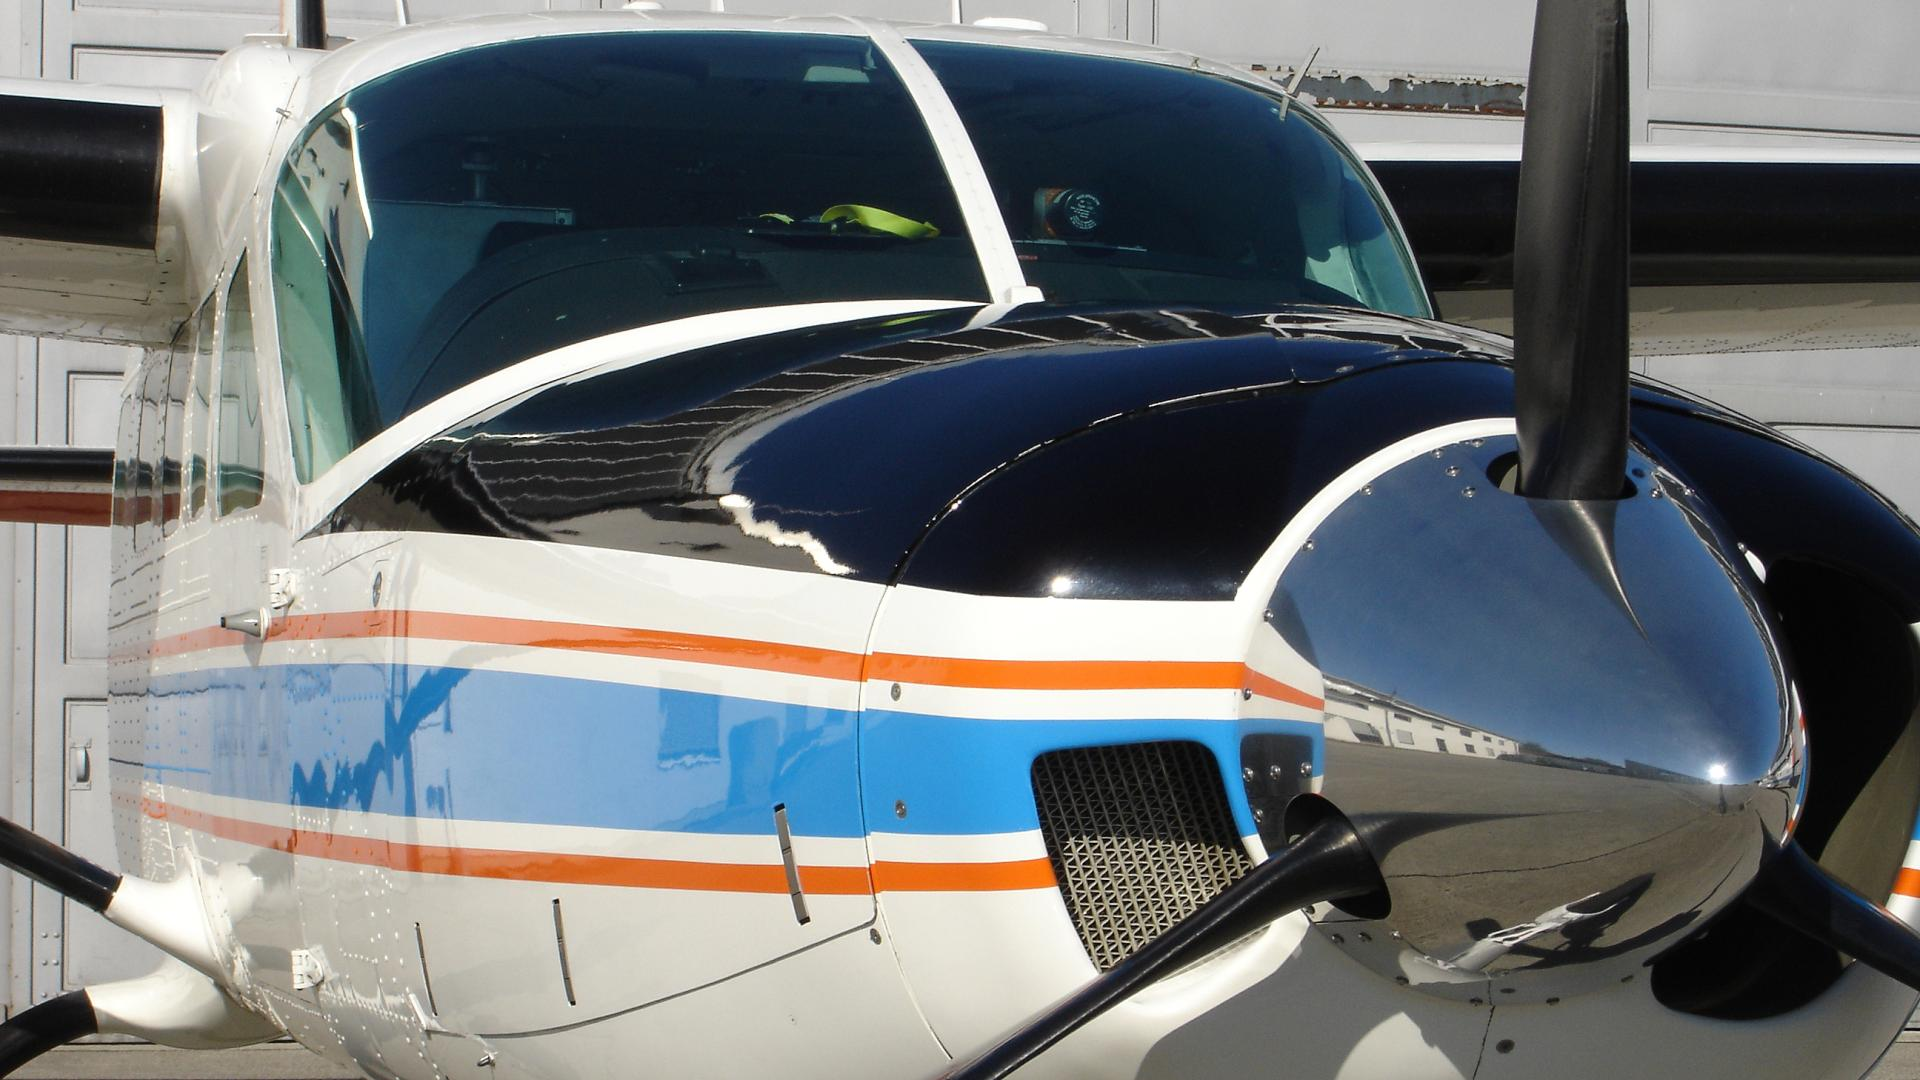 The Cessna 208B Grand Caravan single-engine turboprop aircraft